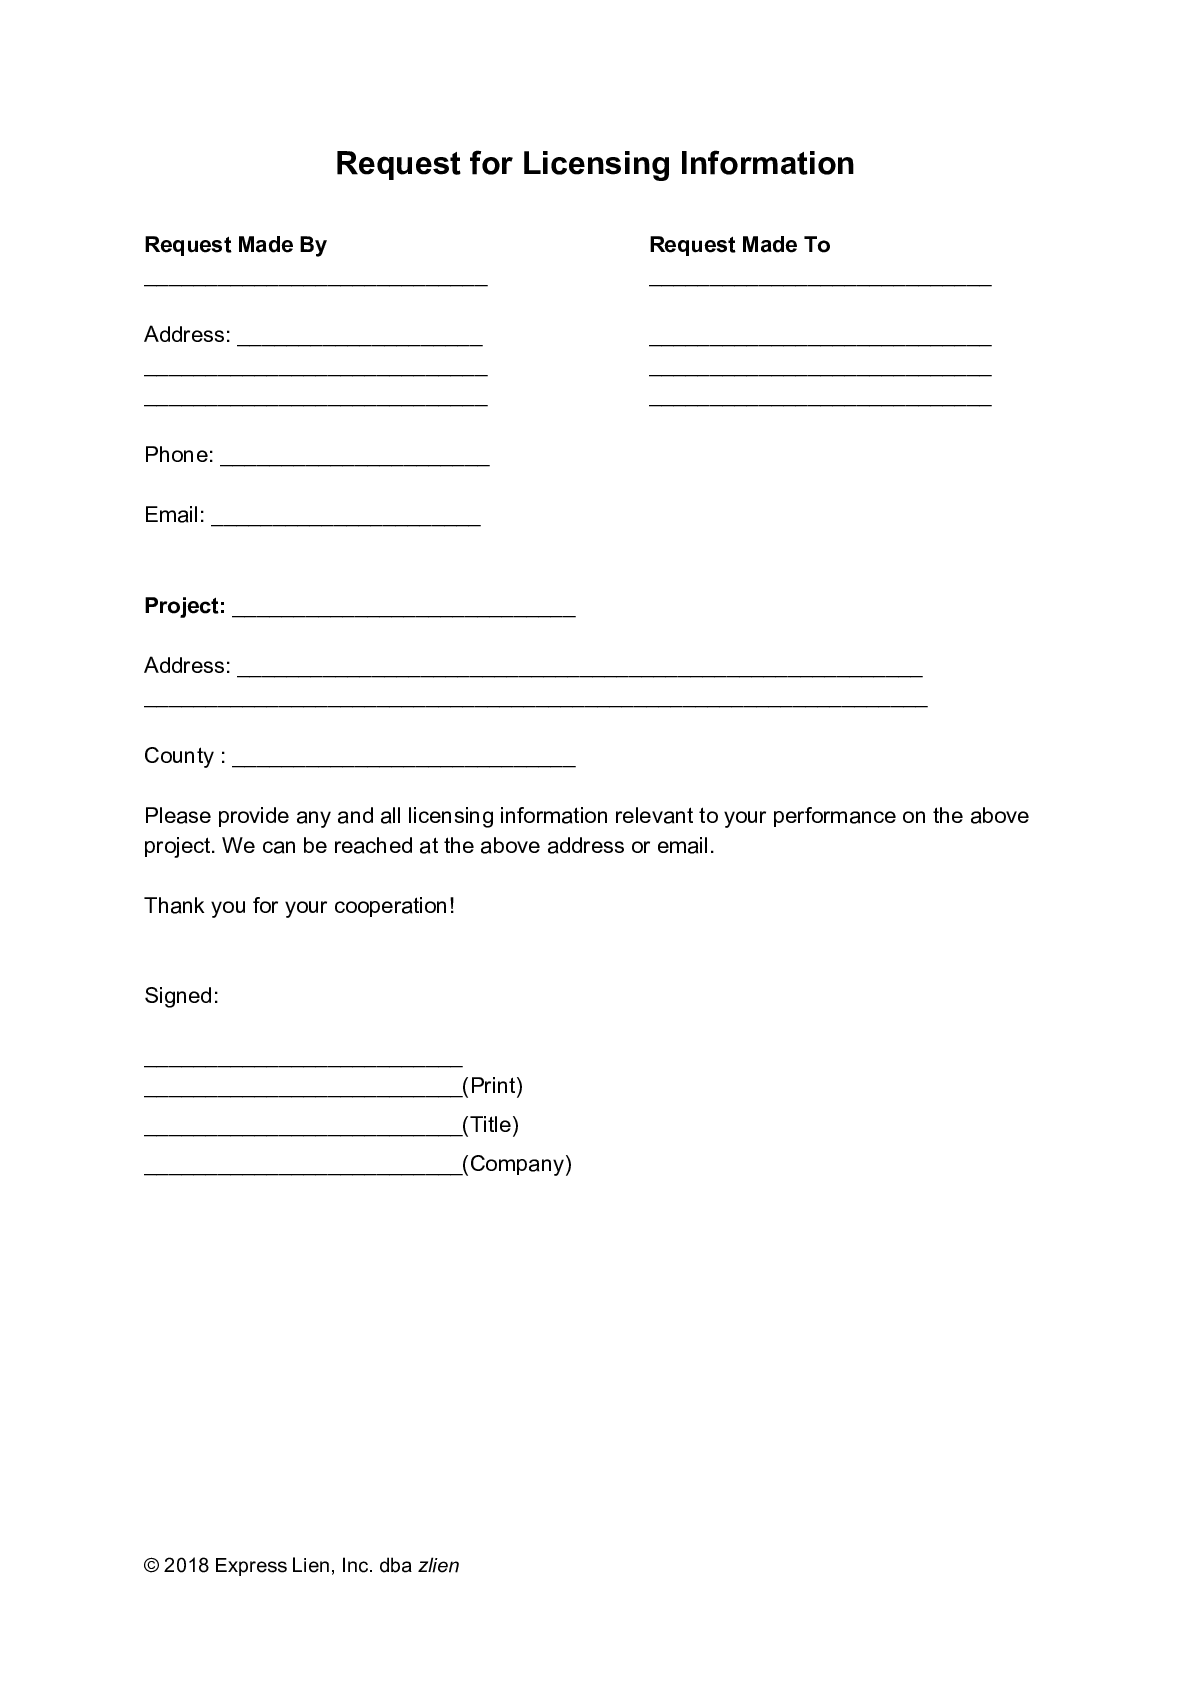 Request for Licensing Information Form